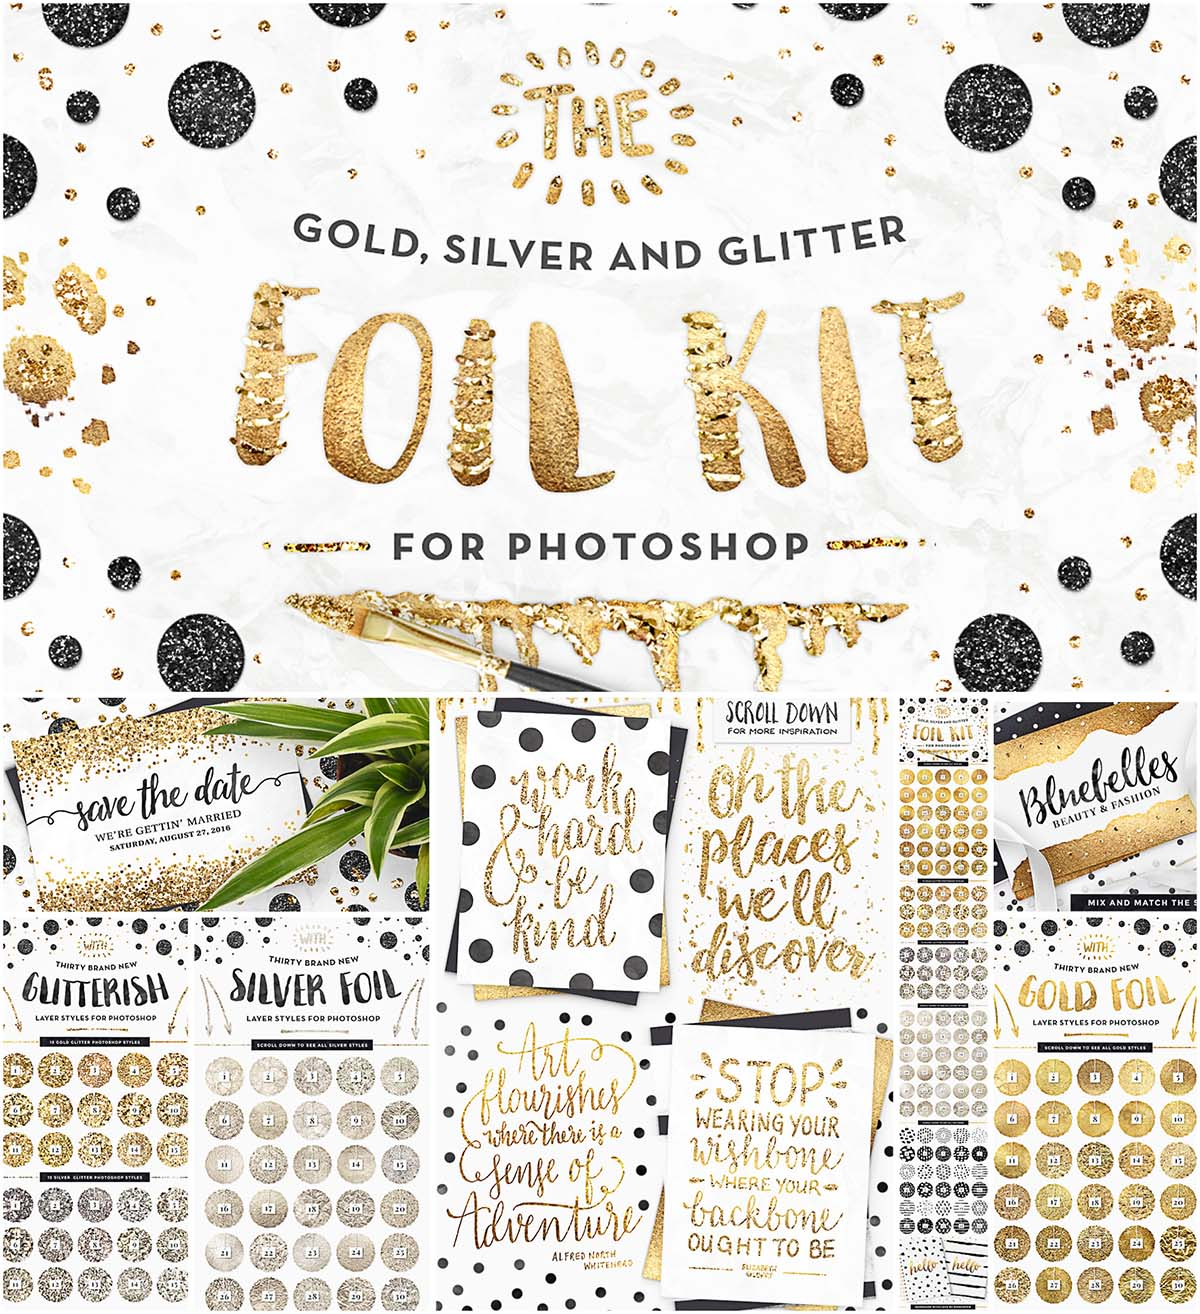 Gold foil kit essentials with patterns | Free download